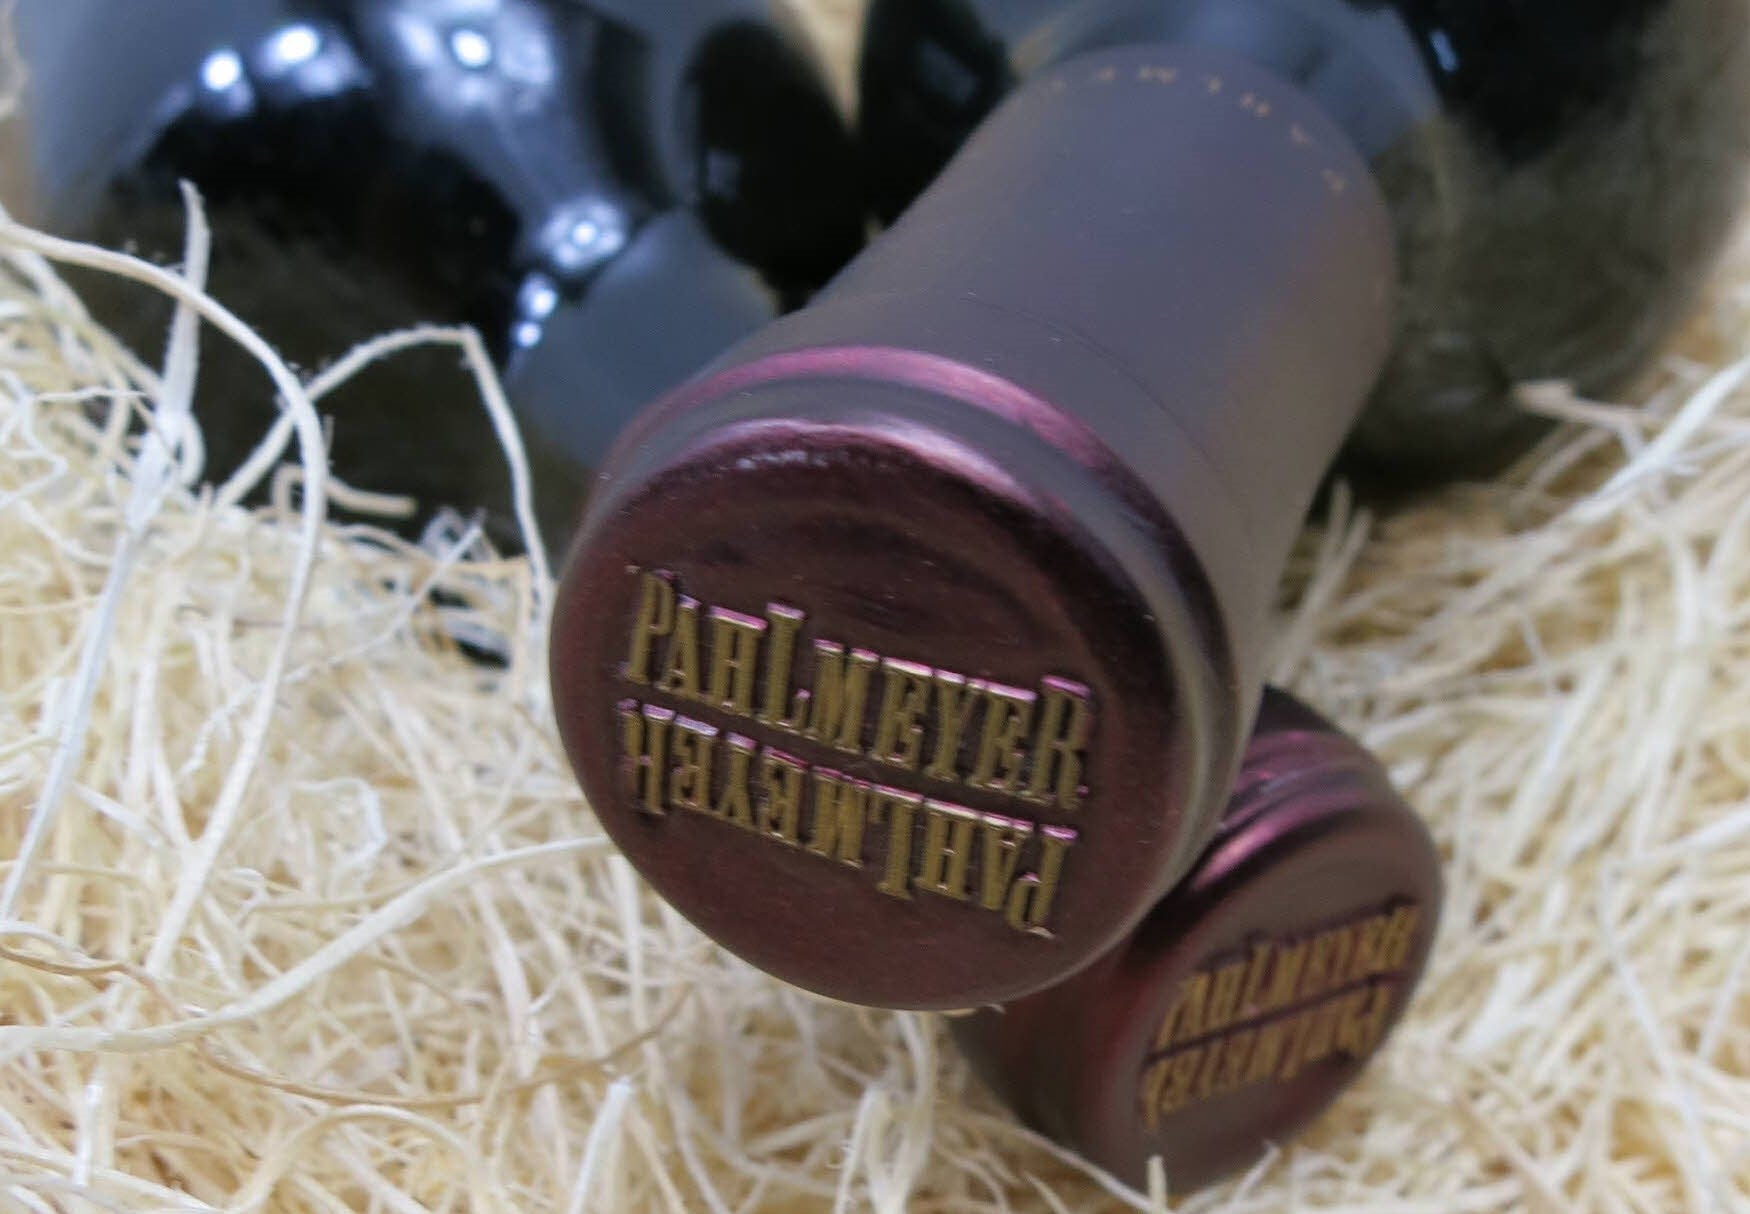 PAHLMEYER PROPRIETARY RED MAGNUMS